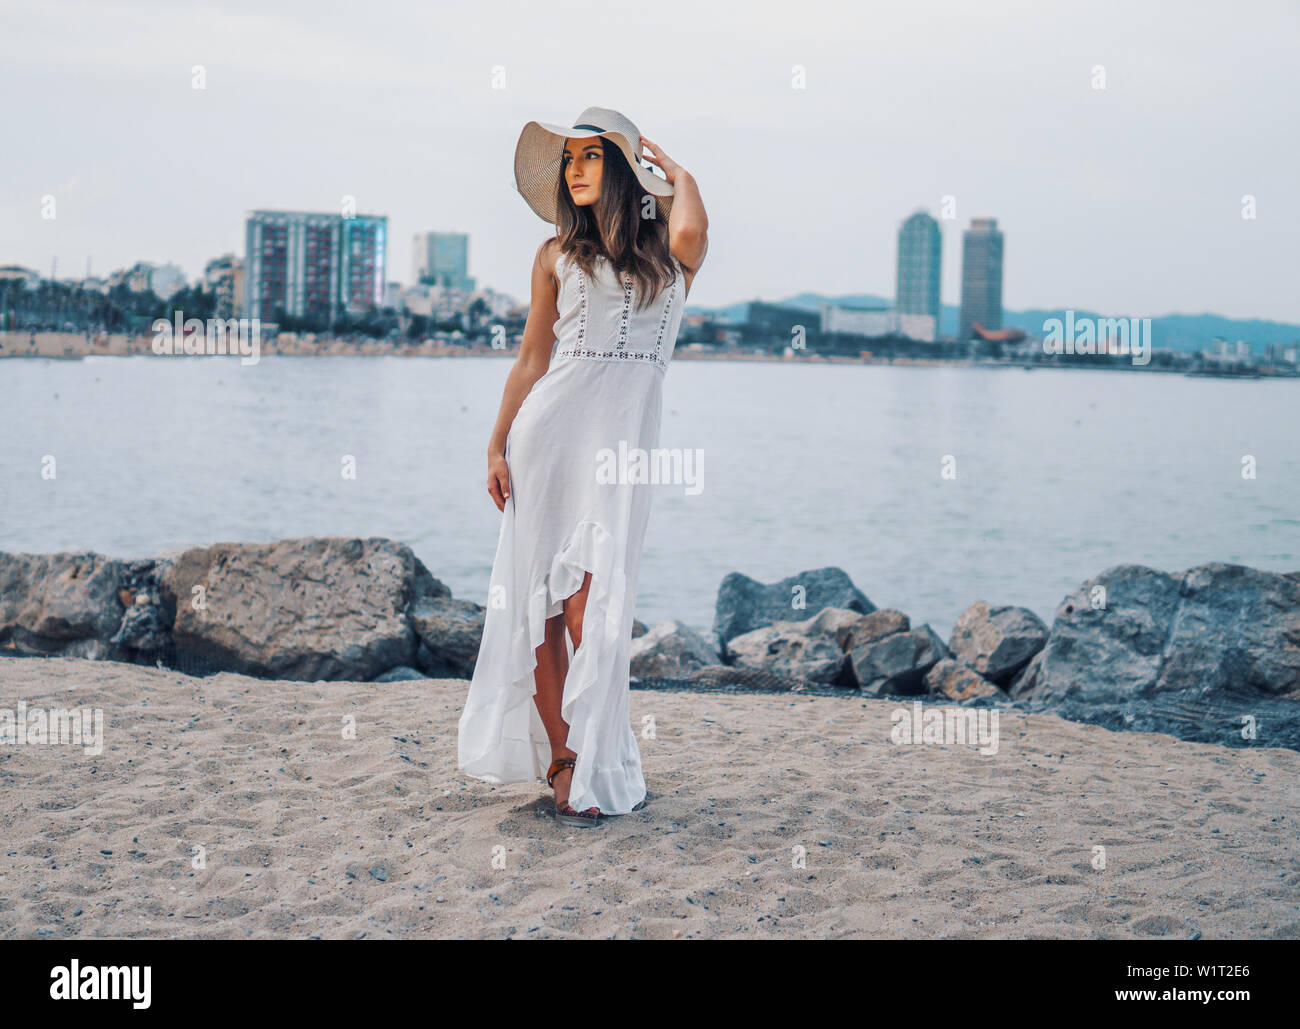 Pretty woman wearing white dress and pamela hat standing Stock Photo